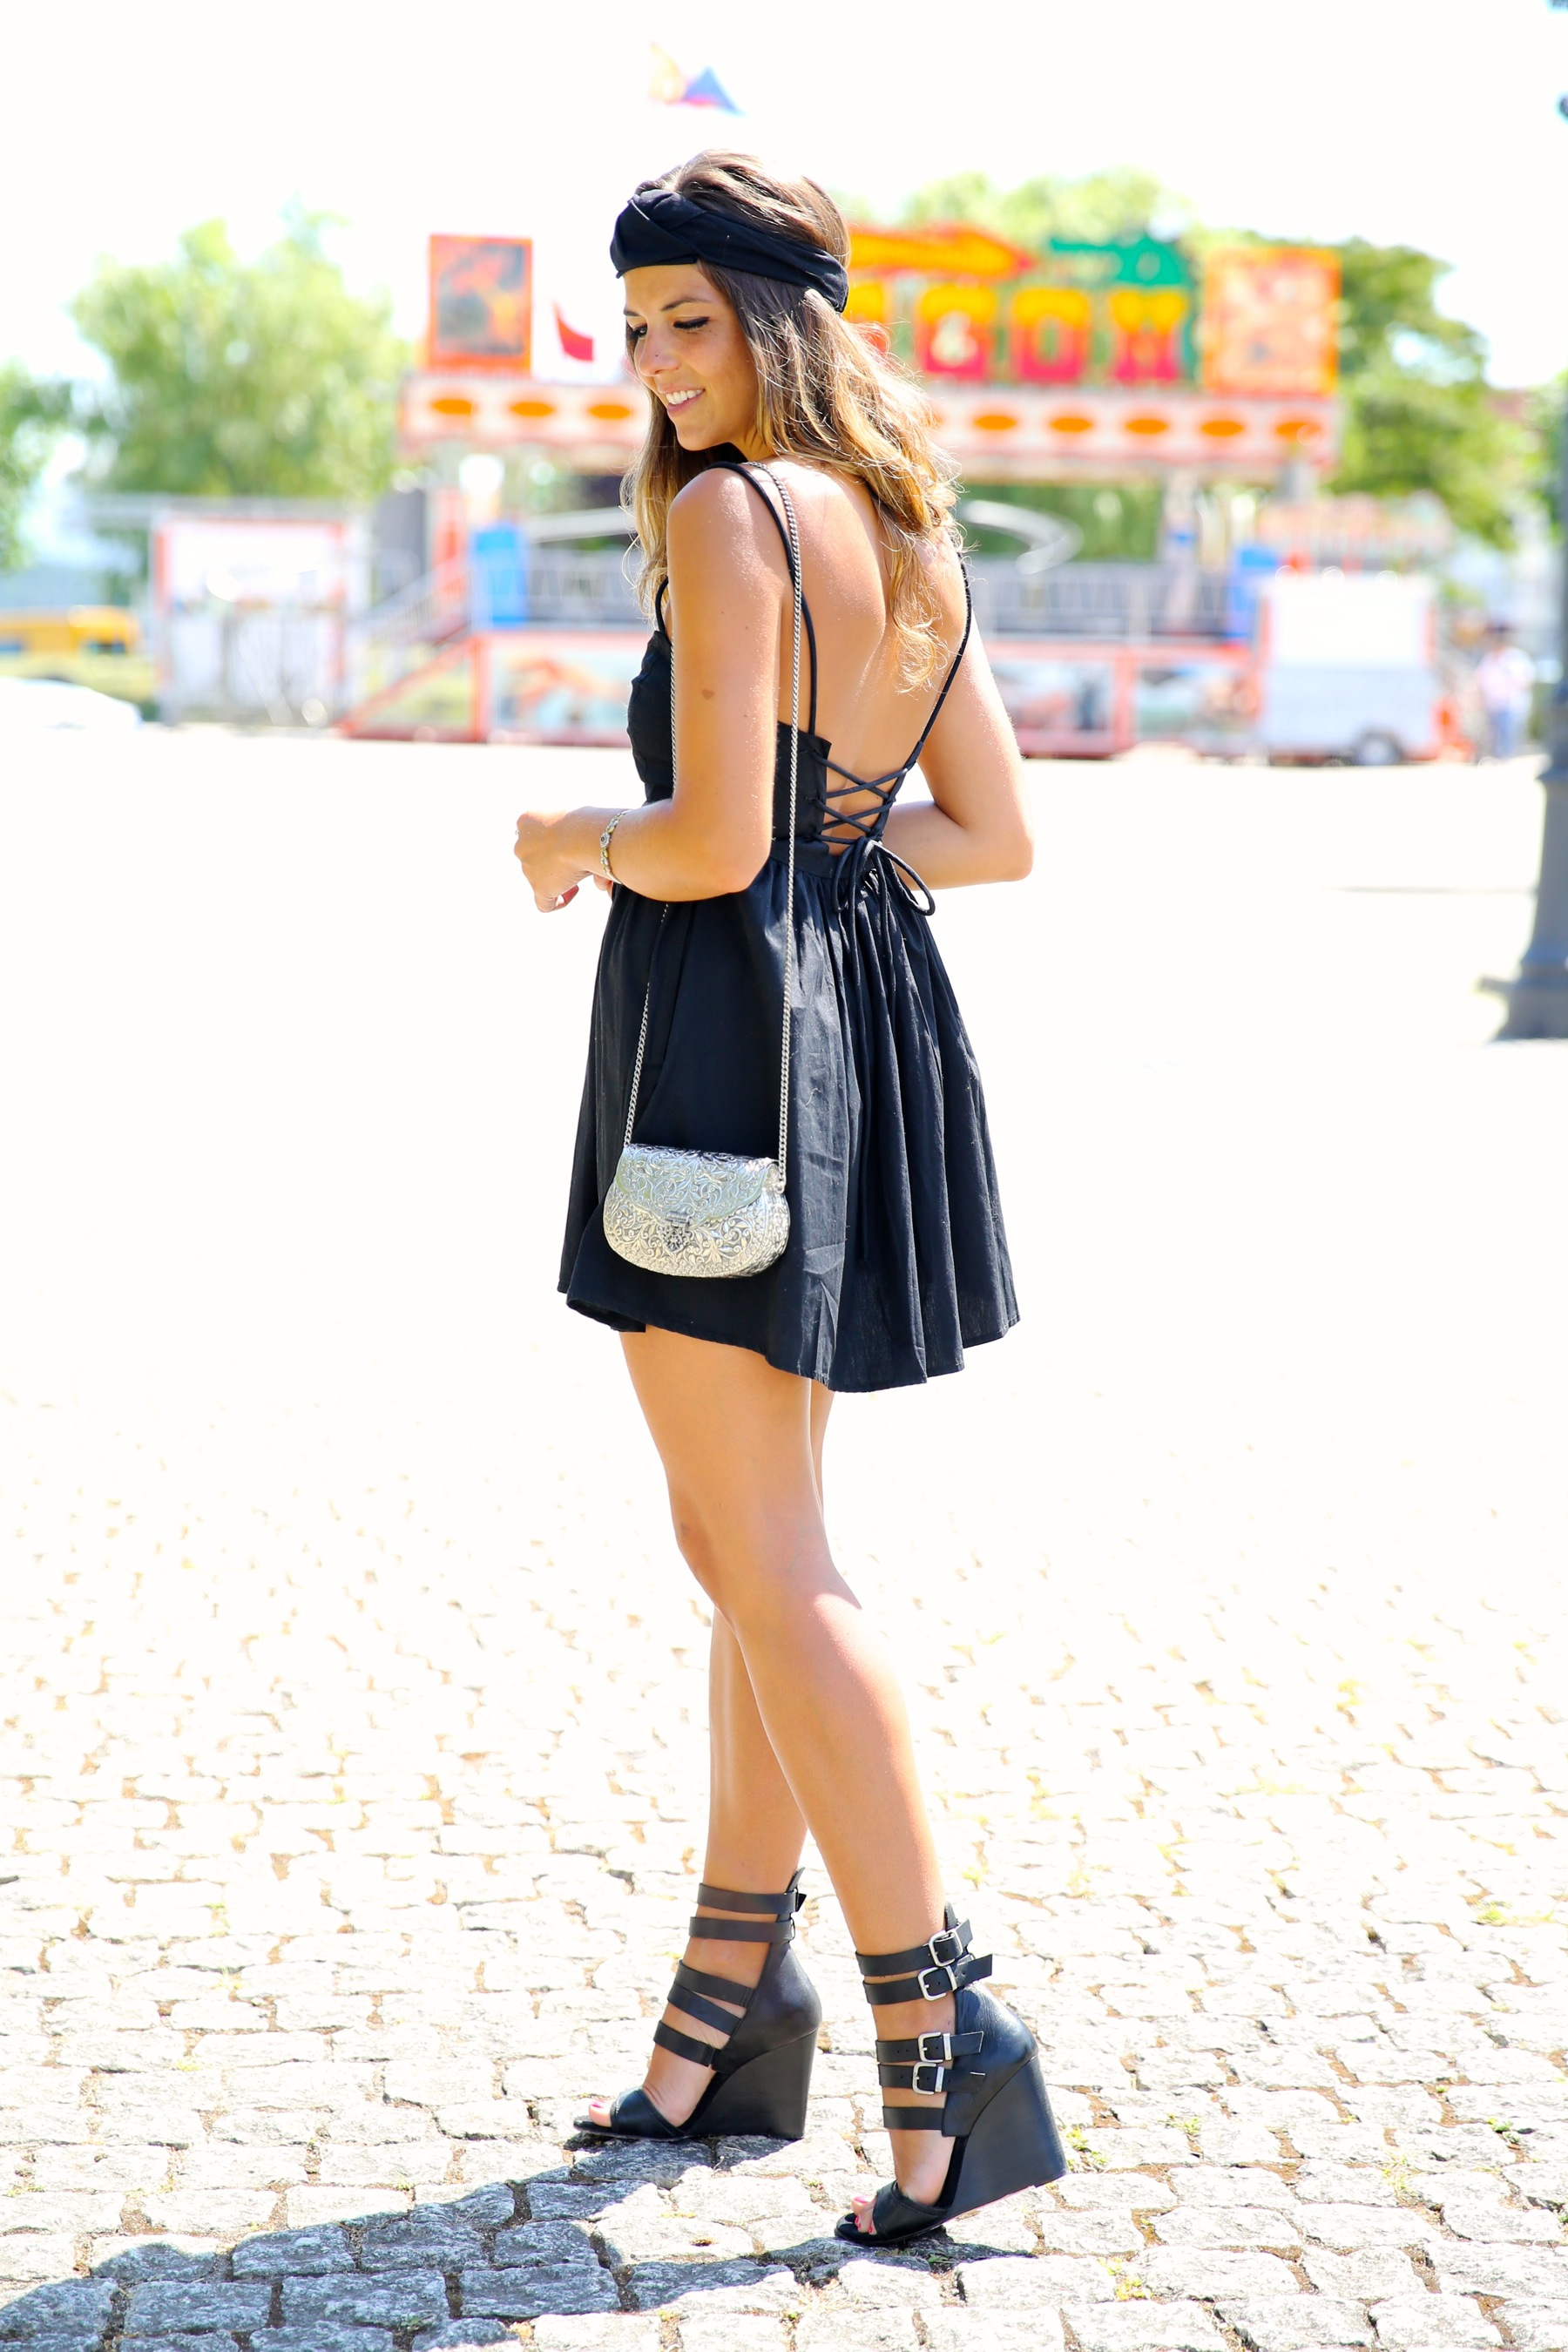 trendy_taste-look-outfit-street_style-blog-blogger-fashion_spain-moda_españa-maje-black_dress-vestido_negro-espalda_abierta-sandalias-silver_bag-bolso_plata-o_grove-galicia-turbante-turban-9